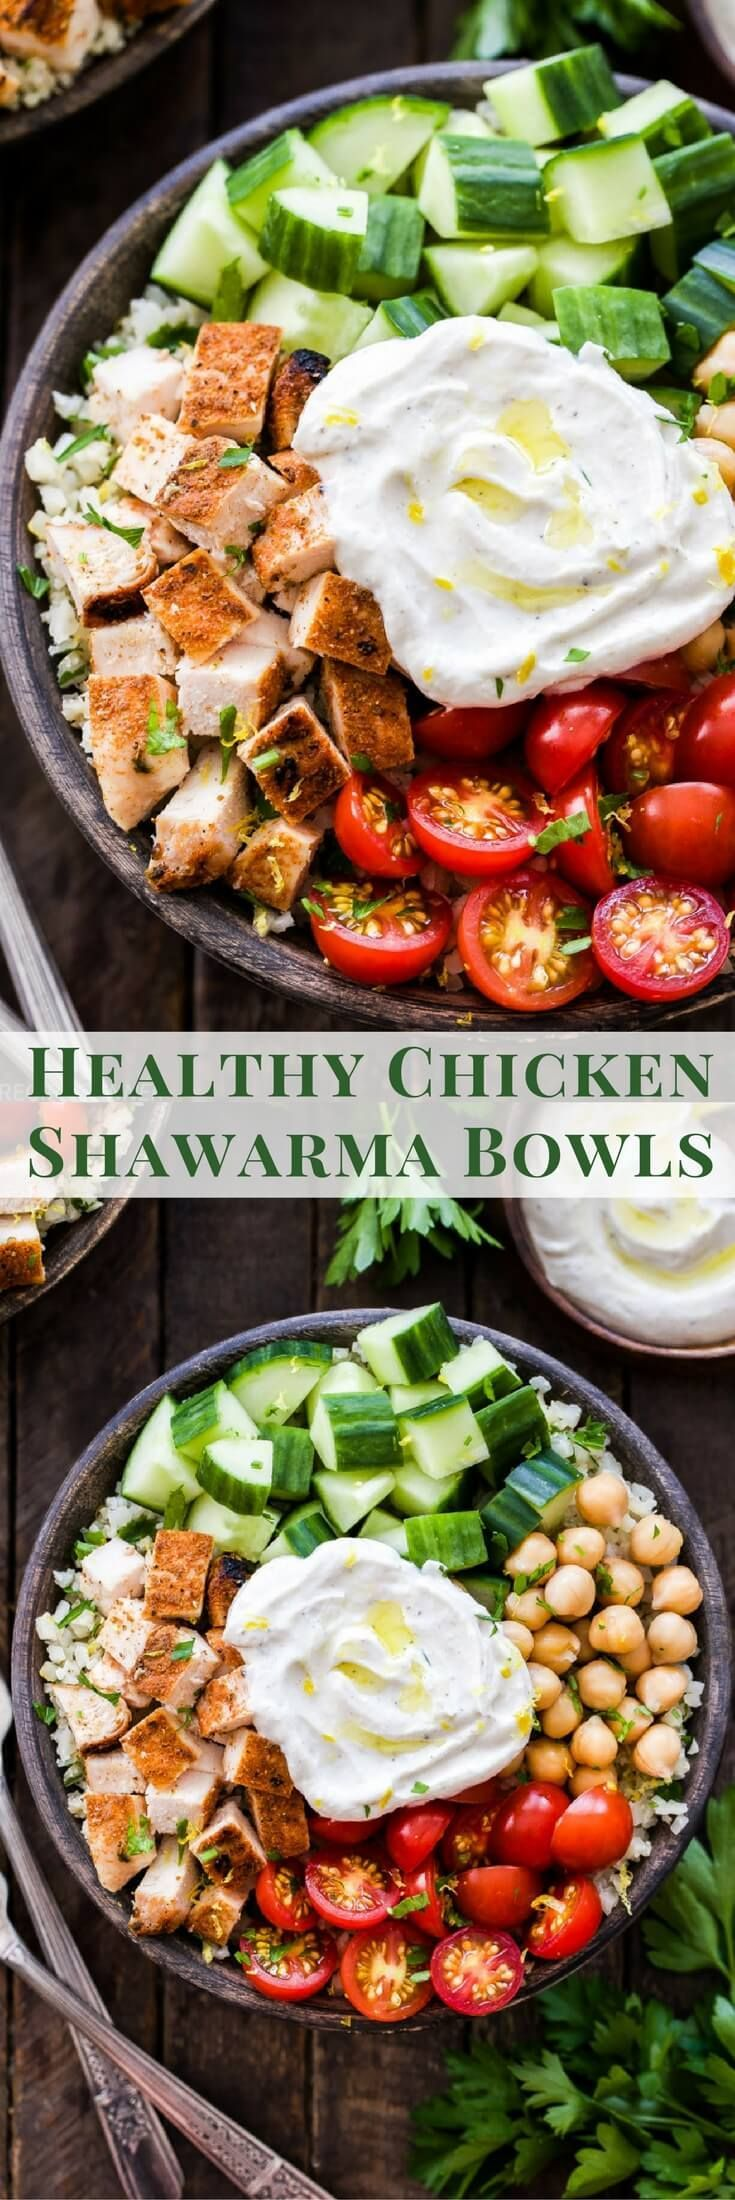 These Healthy Chicken Shawarma Bowls need to be in your weeknight dinner rotation! Fresh vegetables, chickpeas, seasoned chicken and the most amazing spiced yogurt sauce. Keep it low-carb with cauliflower rice or substitute with your favorite whole grain for a complete balanced meal! #healthy #glutenfree #lowcarb